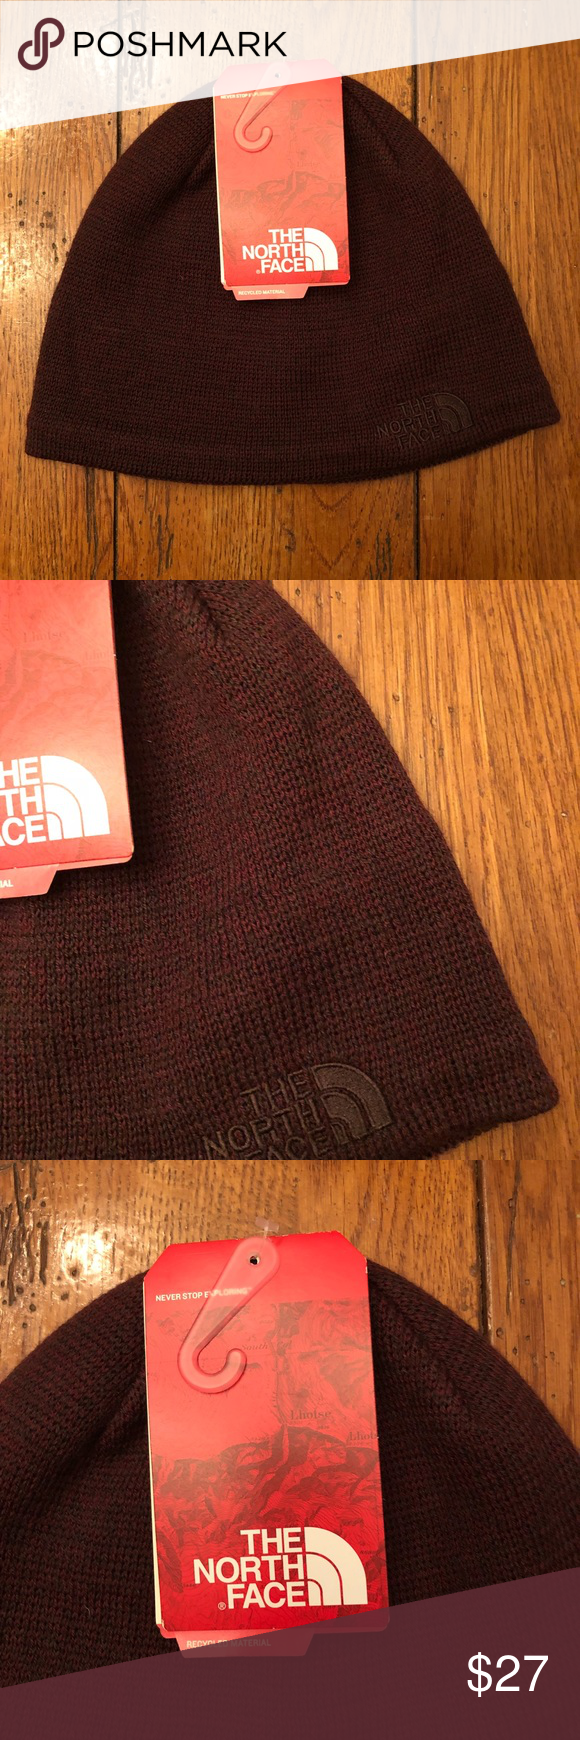 The North Face Beanie The North Face Jim Beanie Adult Size nwt Mug-1715-we  The North Face Accessories Hats 3f4138d5665